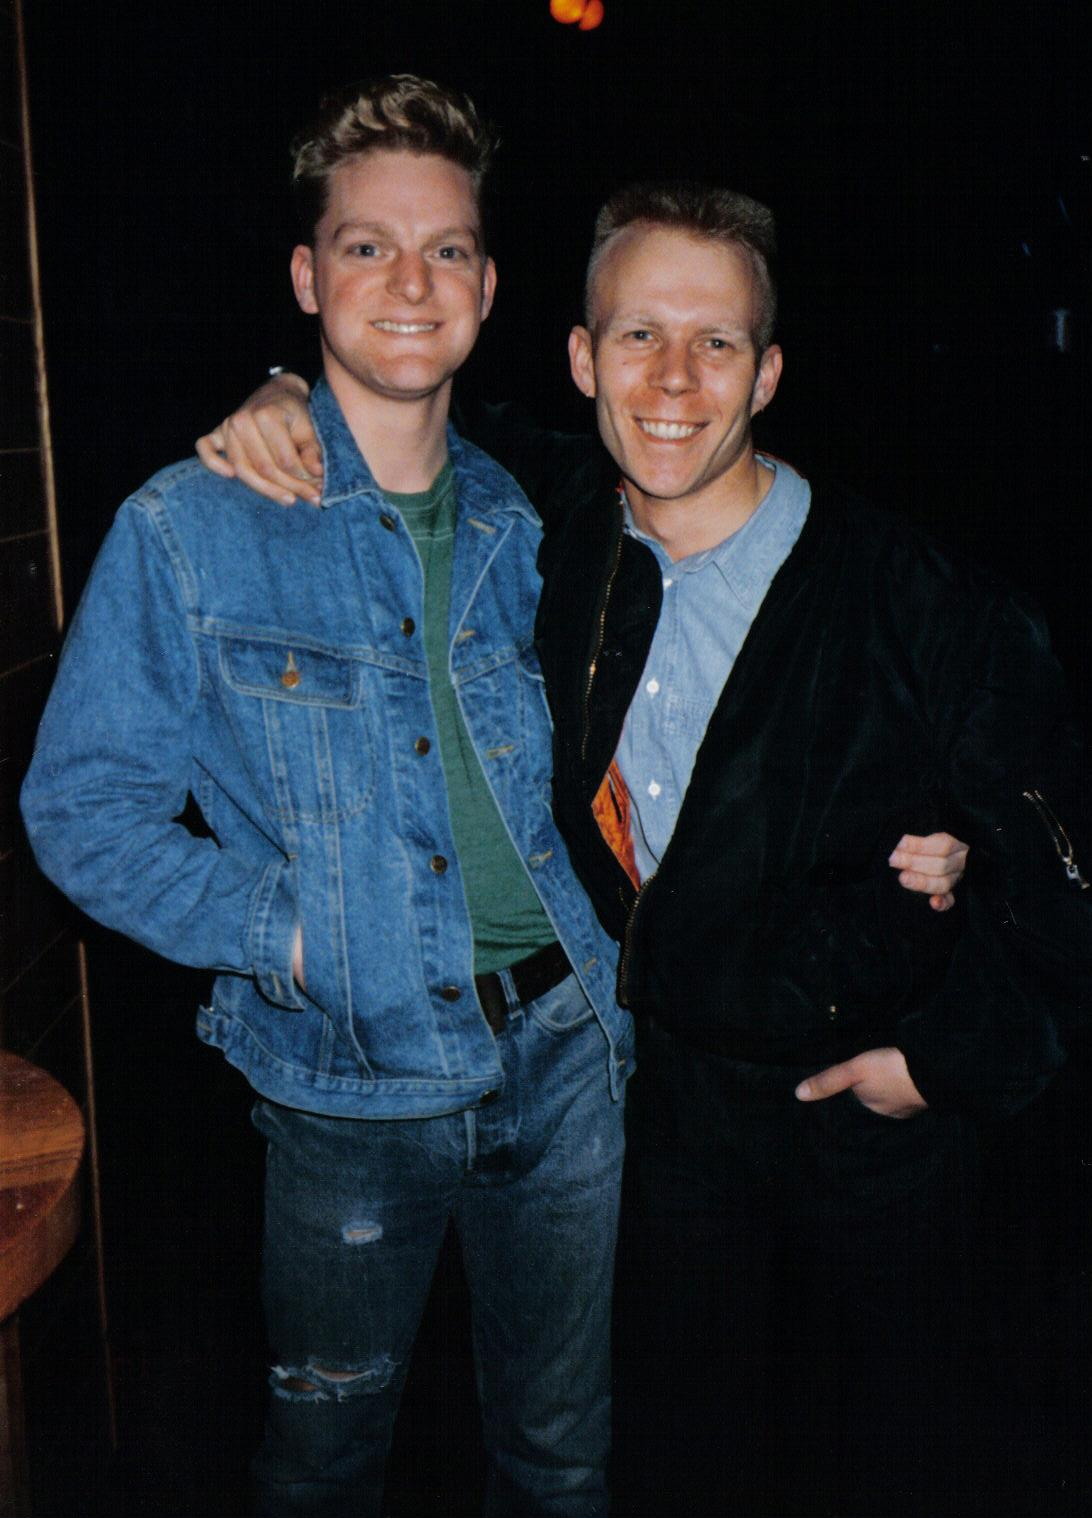 Andy Bell and Vince Clarke (Erasure) in 1986